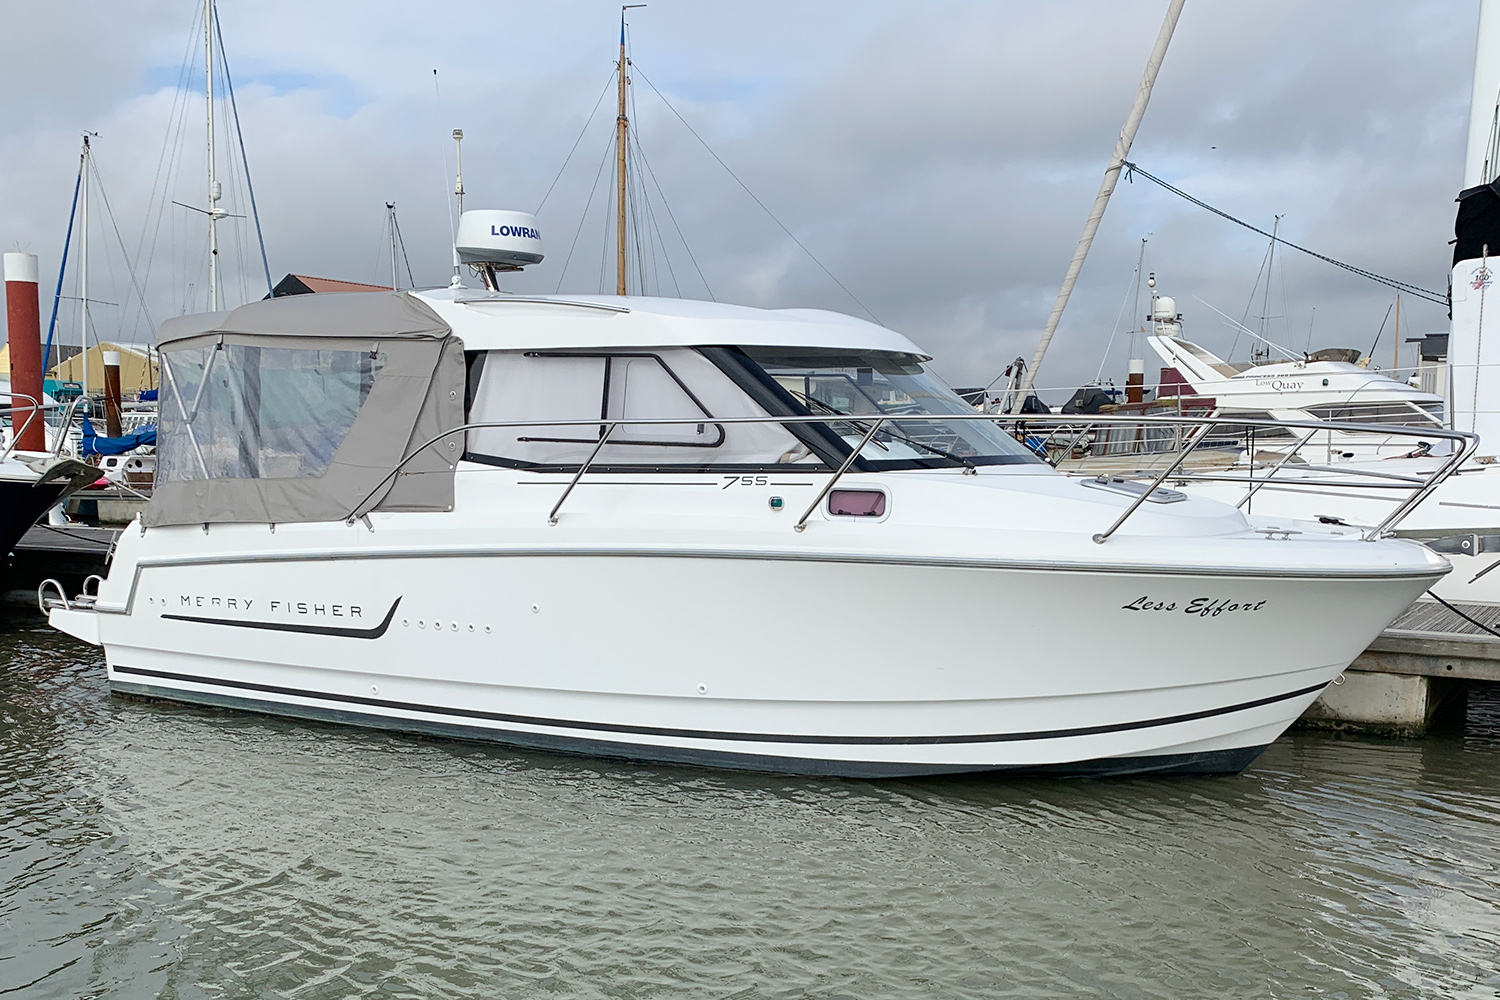 Jeanneau Merry Fisher 755 - on the water